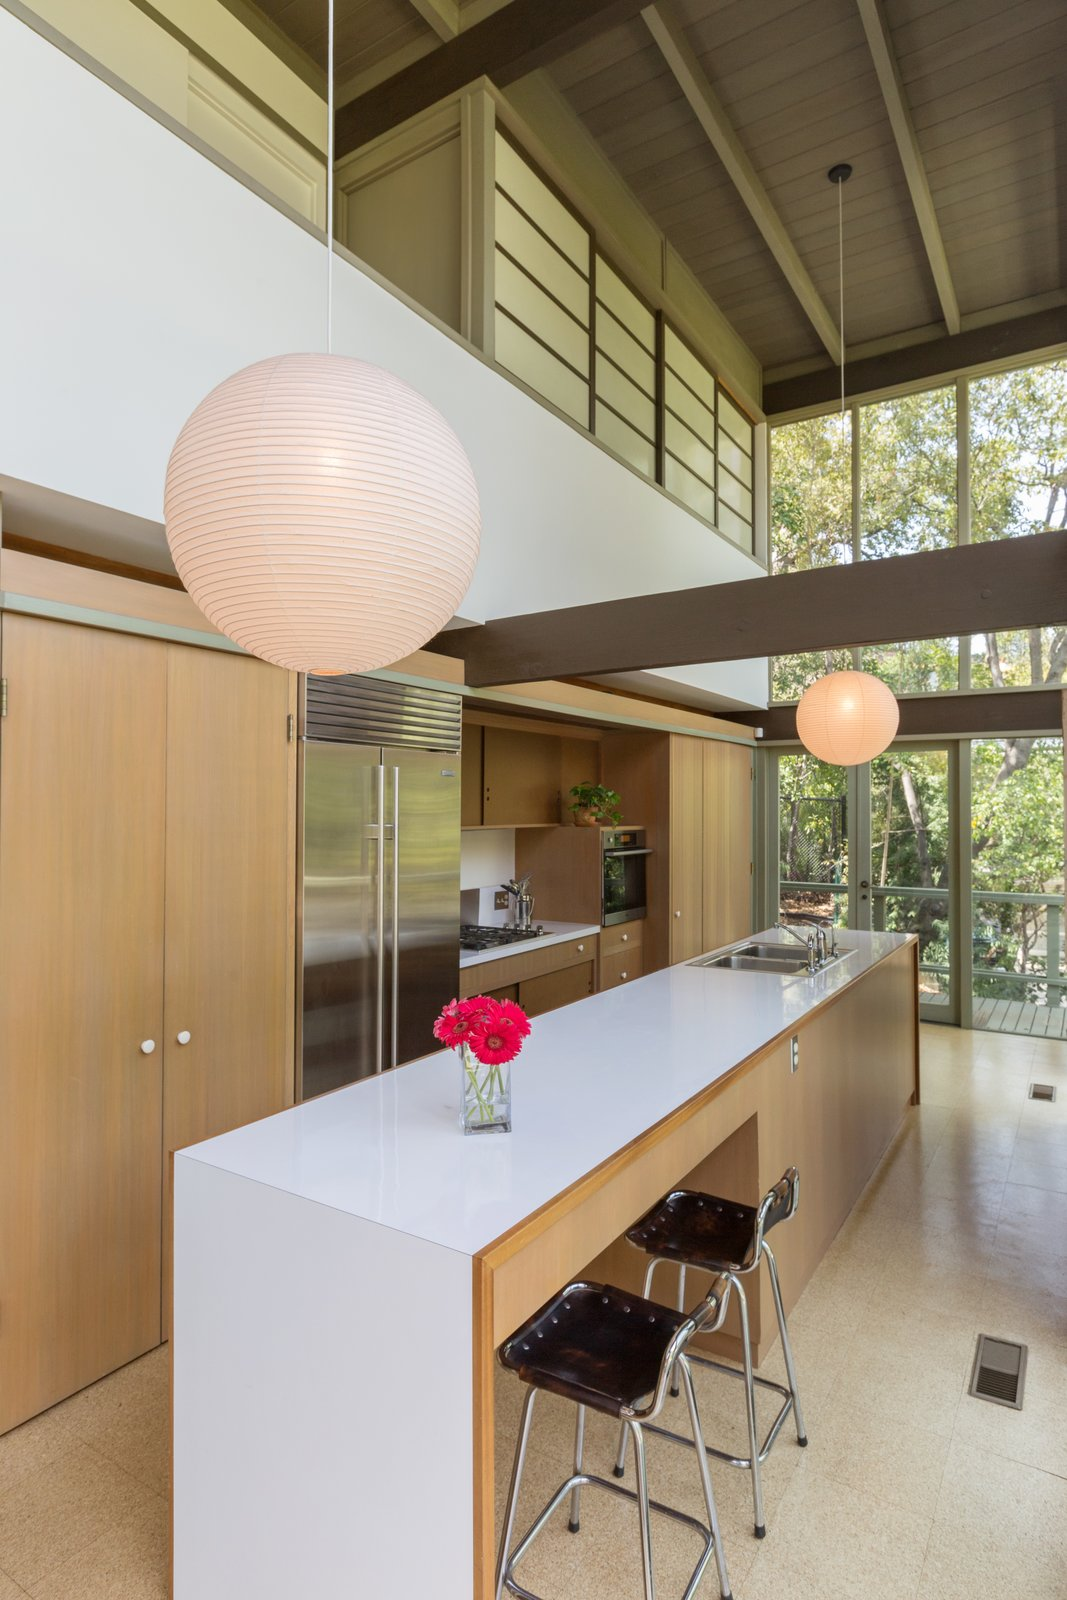 Kitchen, Pendant, Drop In, Laminate, Refrigerator, Wood, Microwave, Cooktops, and Wall Oven The updated kitchen features a Sub-Zero refrigerator and Miele appliances.  Best Kitchen Cooktops Drop In Wall Oven Microwave Laminate Photos from Mad Men Producer Puts His Pasadena Midcentury Up For Auction Starting at $1.7M